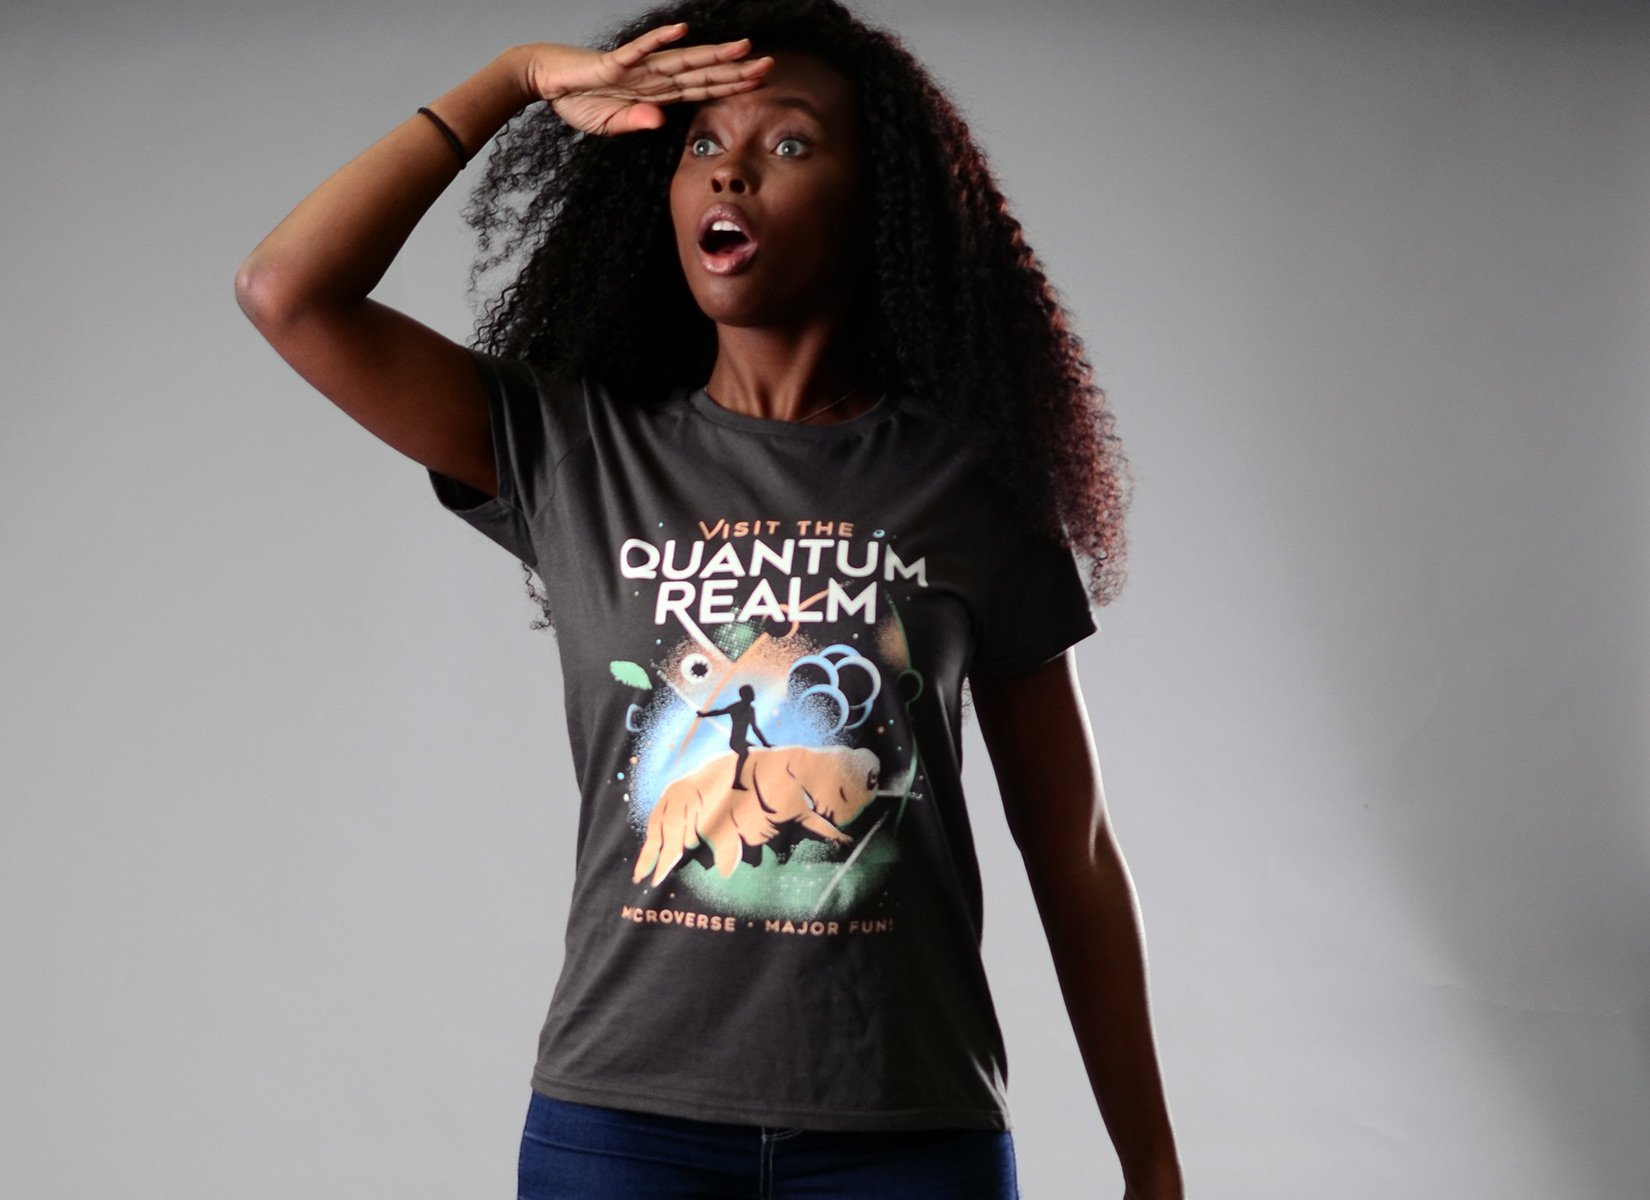 Visit The Quantum Realm on Womens T-Shirt